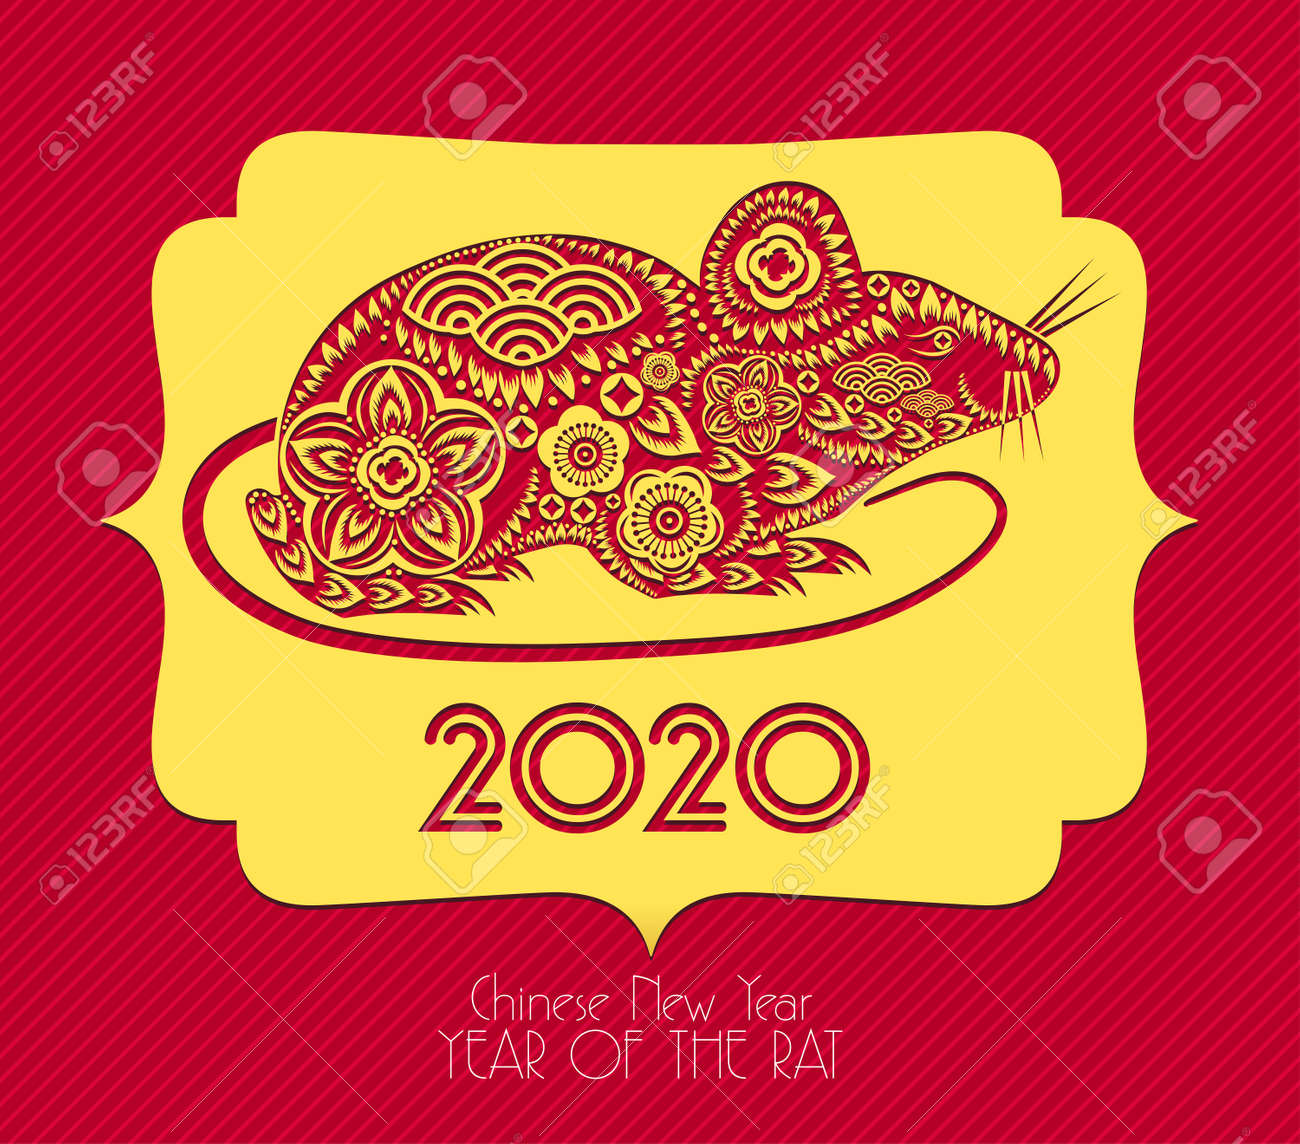 Asian New Year 2020.Happy Chinese New Year 2020 Year Of The Rat Lunar New Year